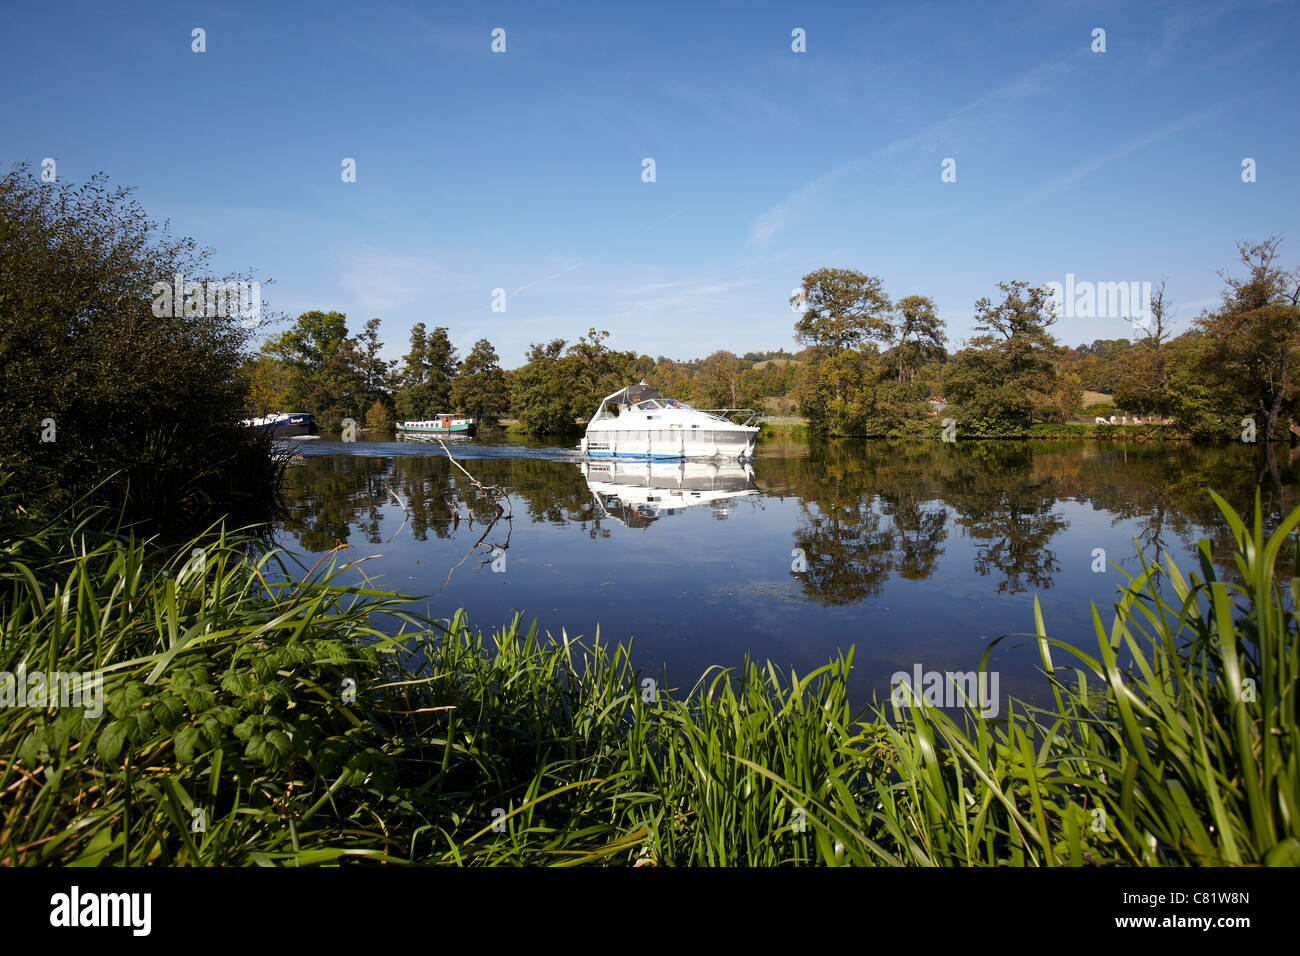 A boat sailing on the River Thames near to Pangbourne, Reading, Berkshire. - Stock Image